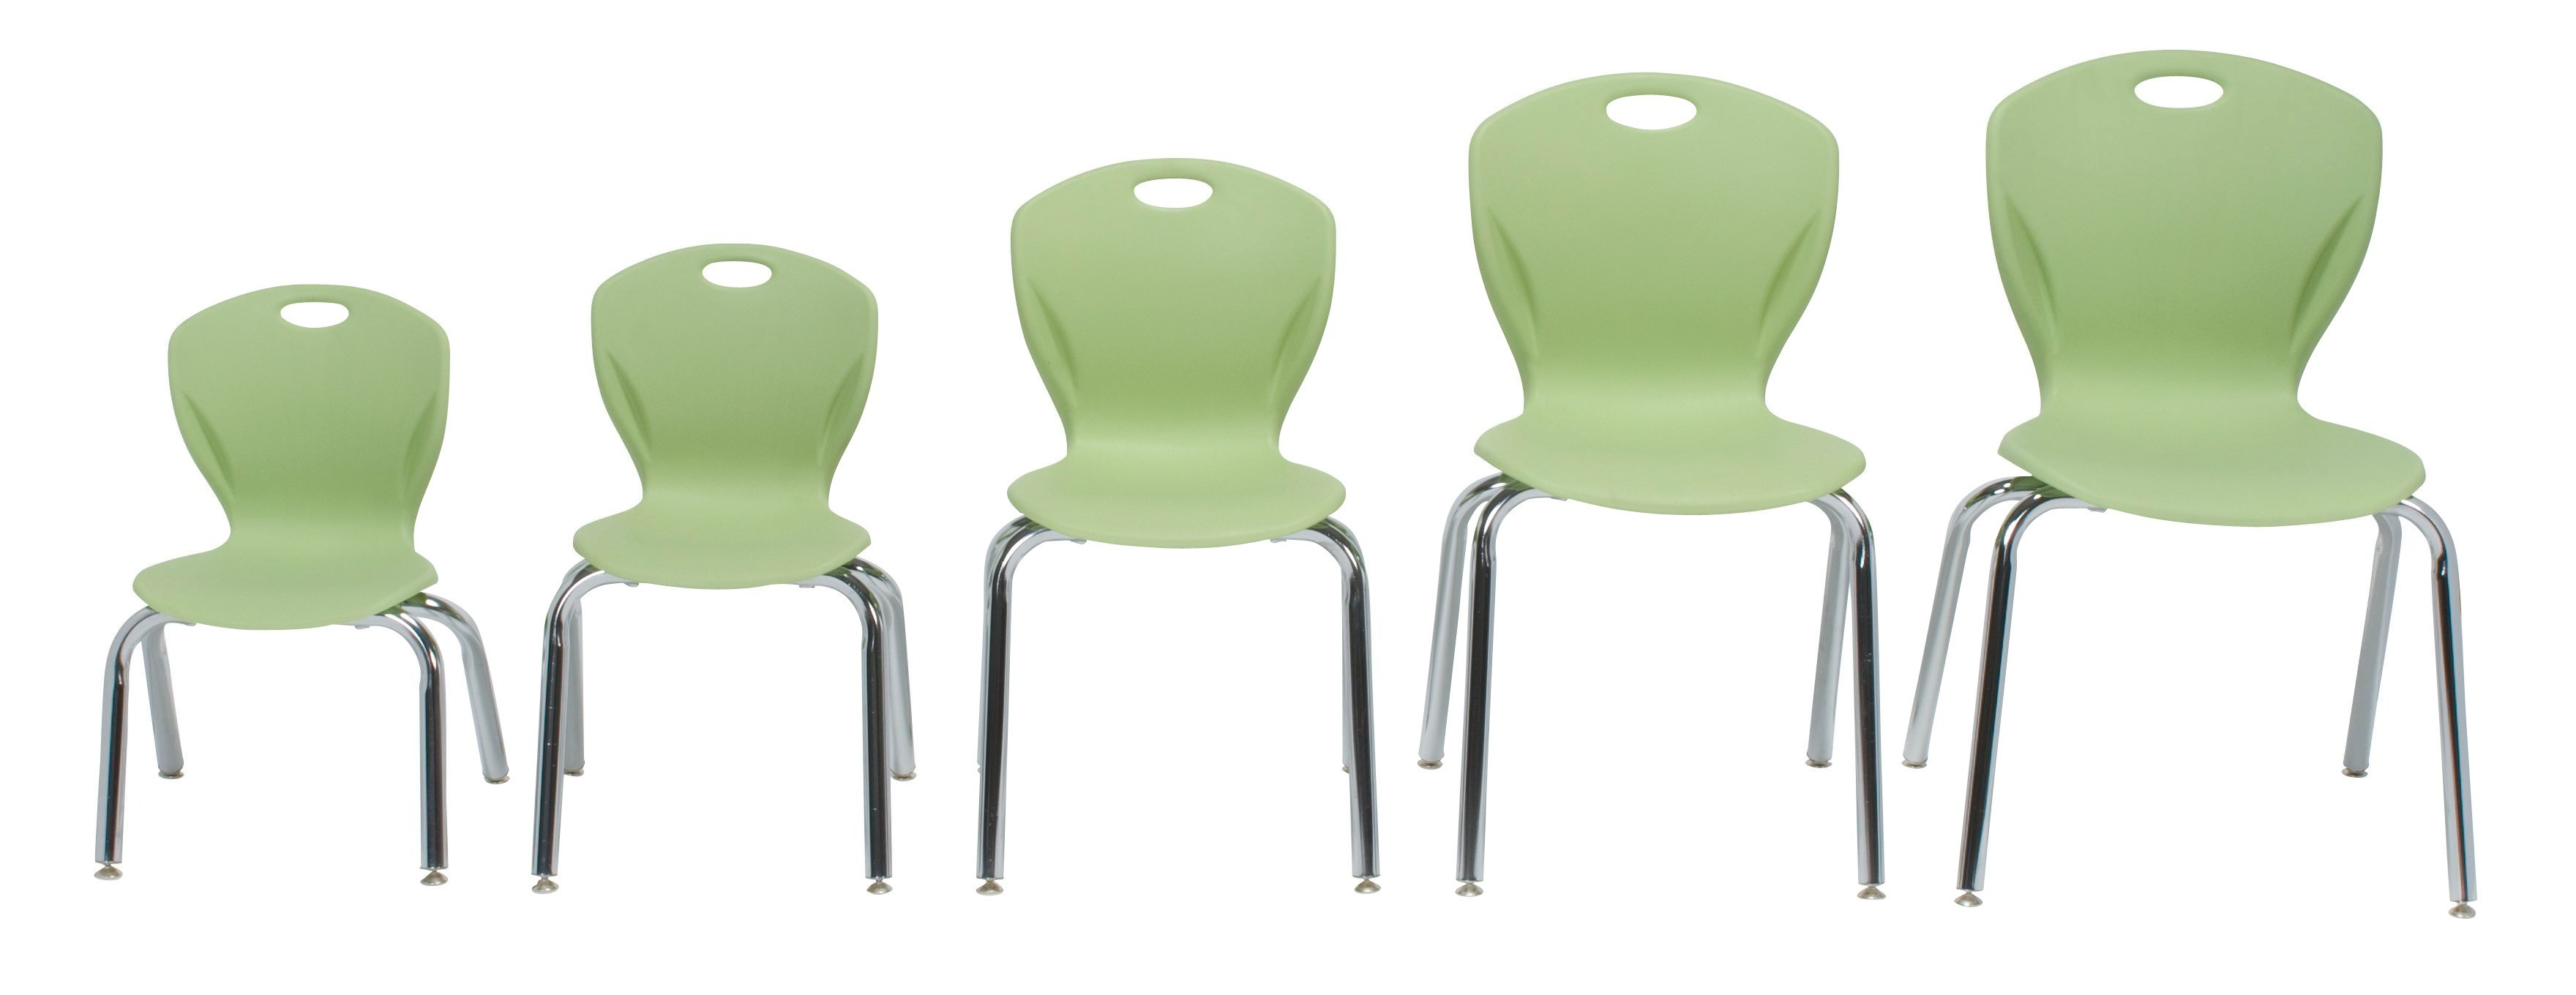 Artcobell Discover Four Leg Stacking Chairs At School